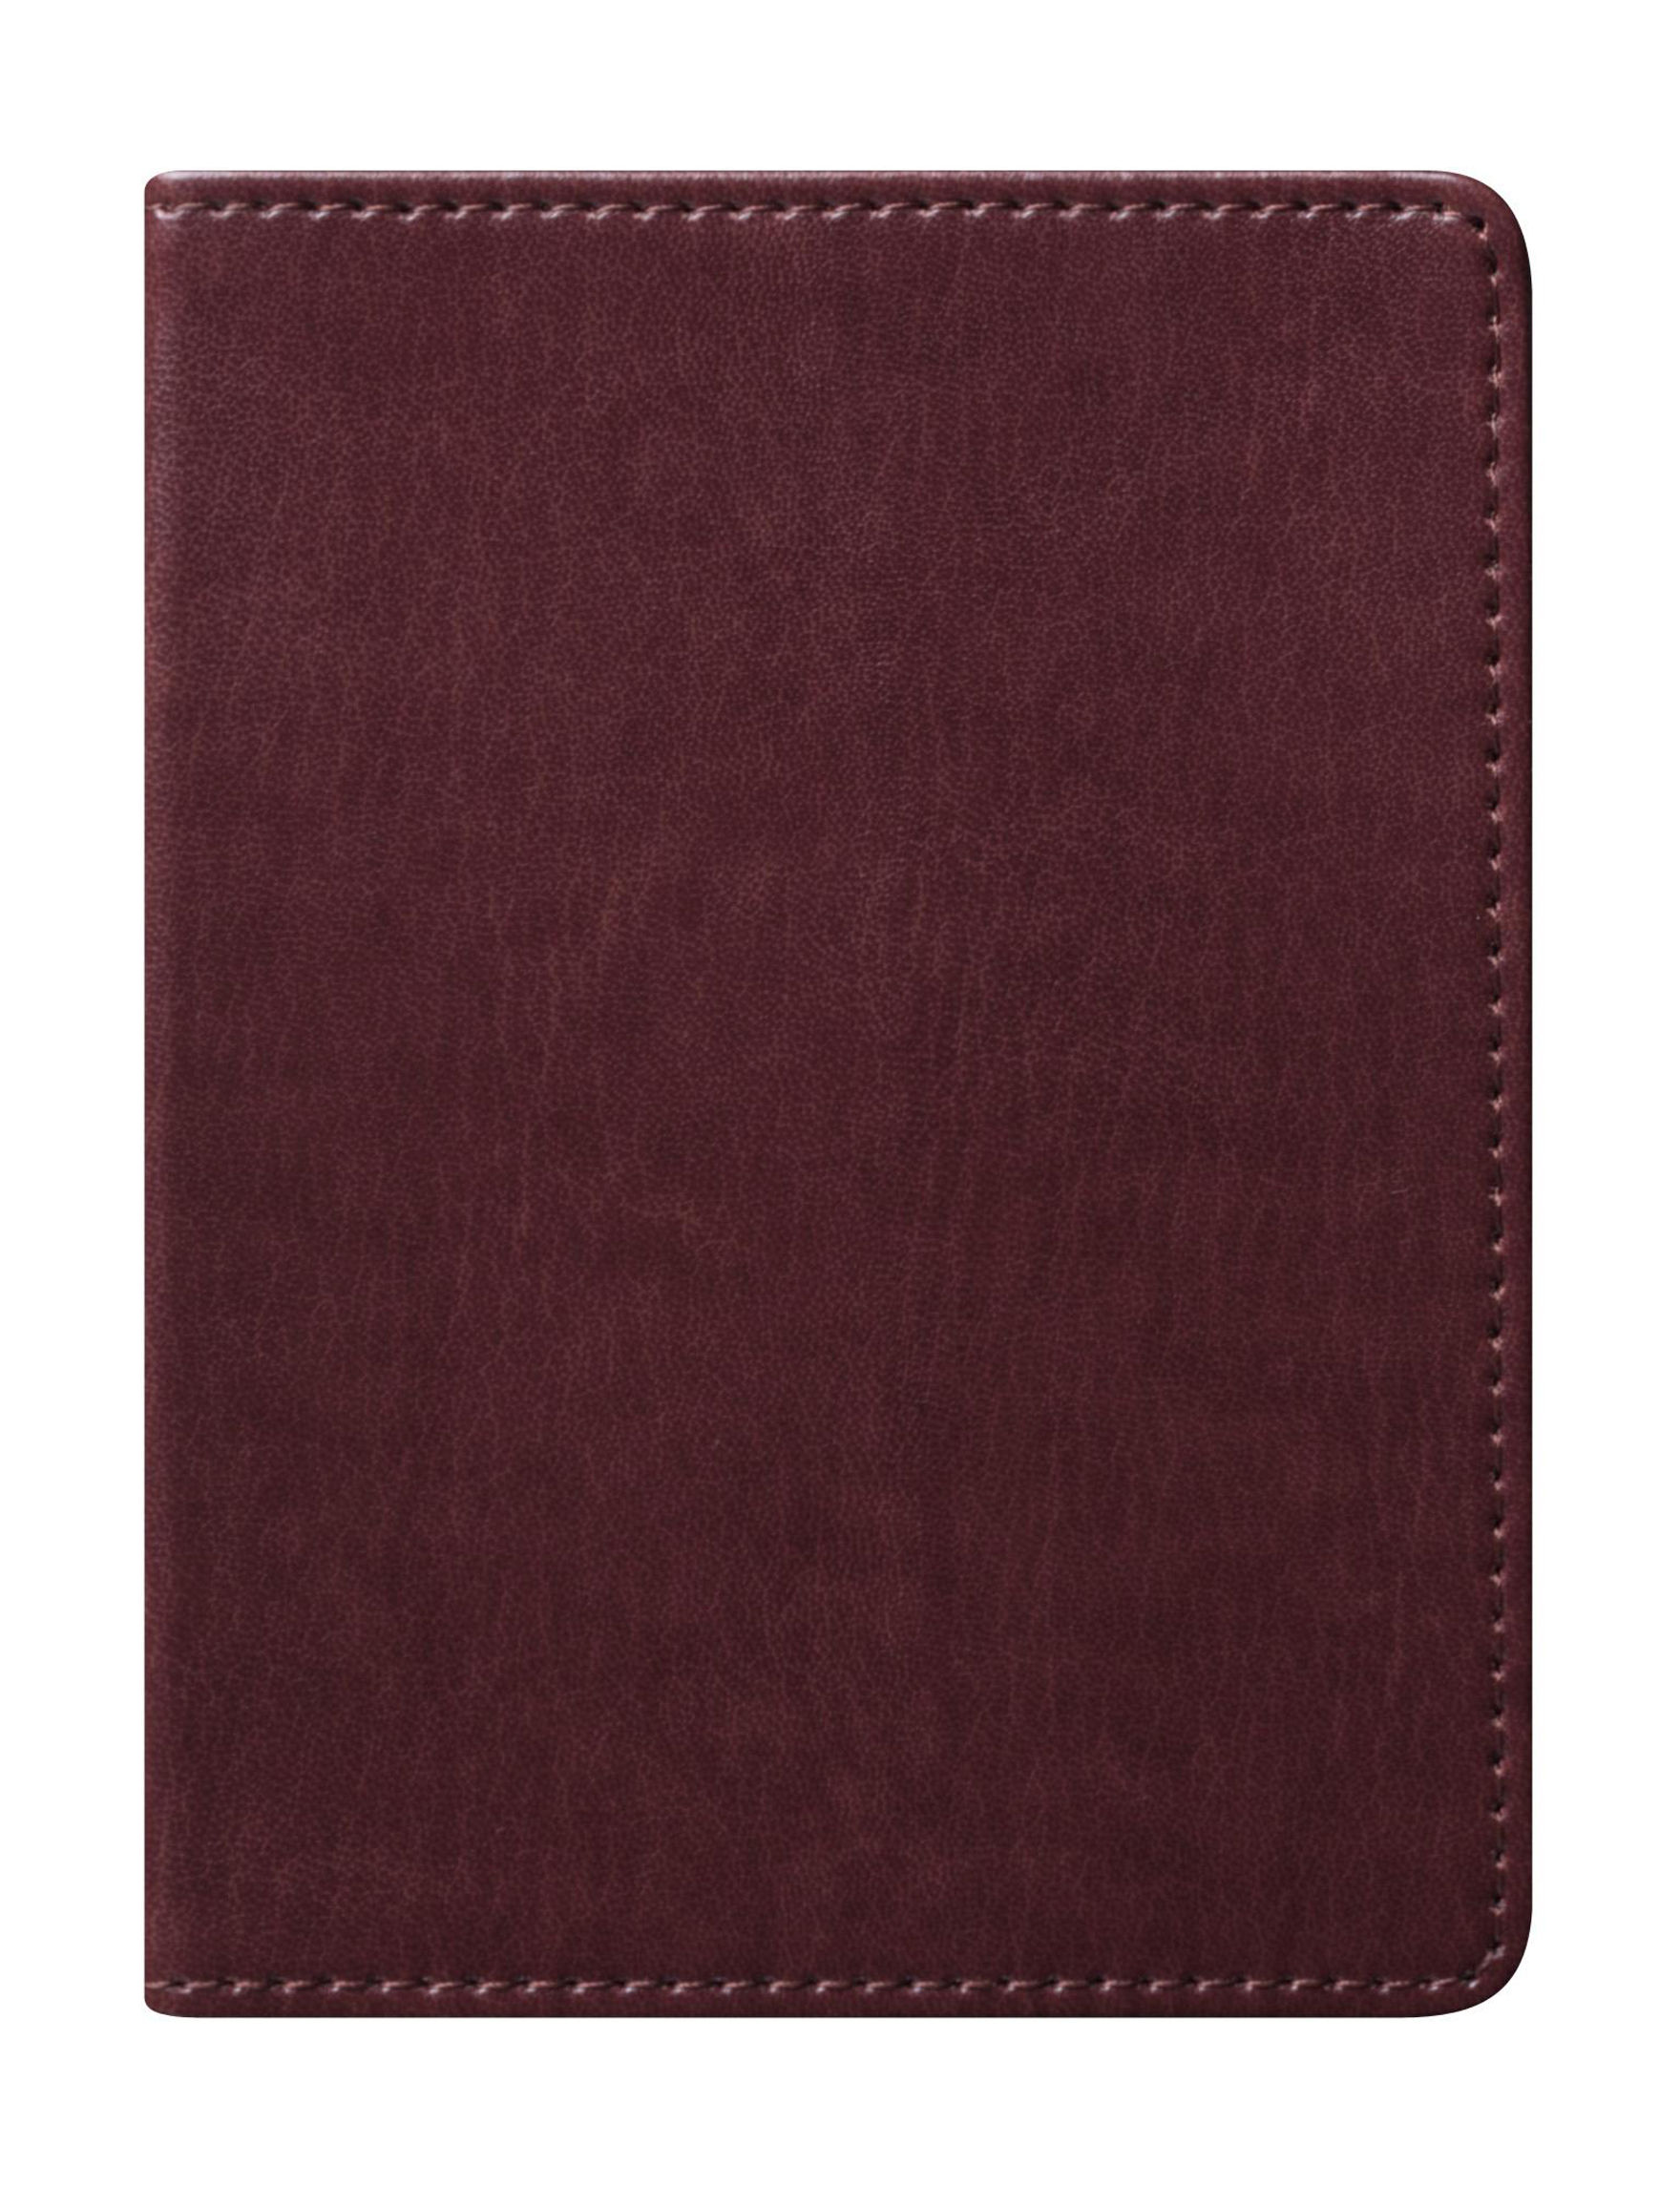 Eccolo Brown Journals & Notepads School & Office Supplies